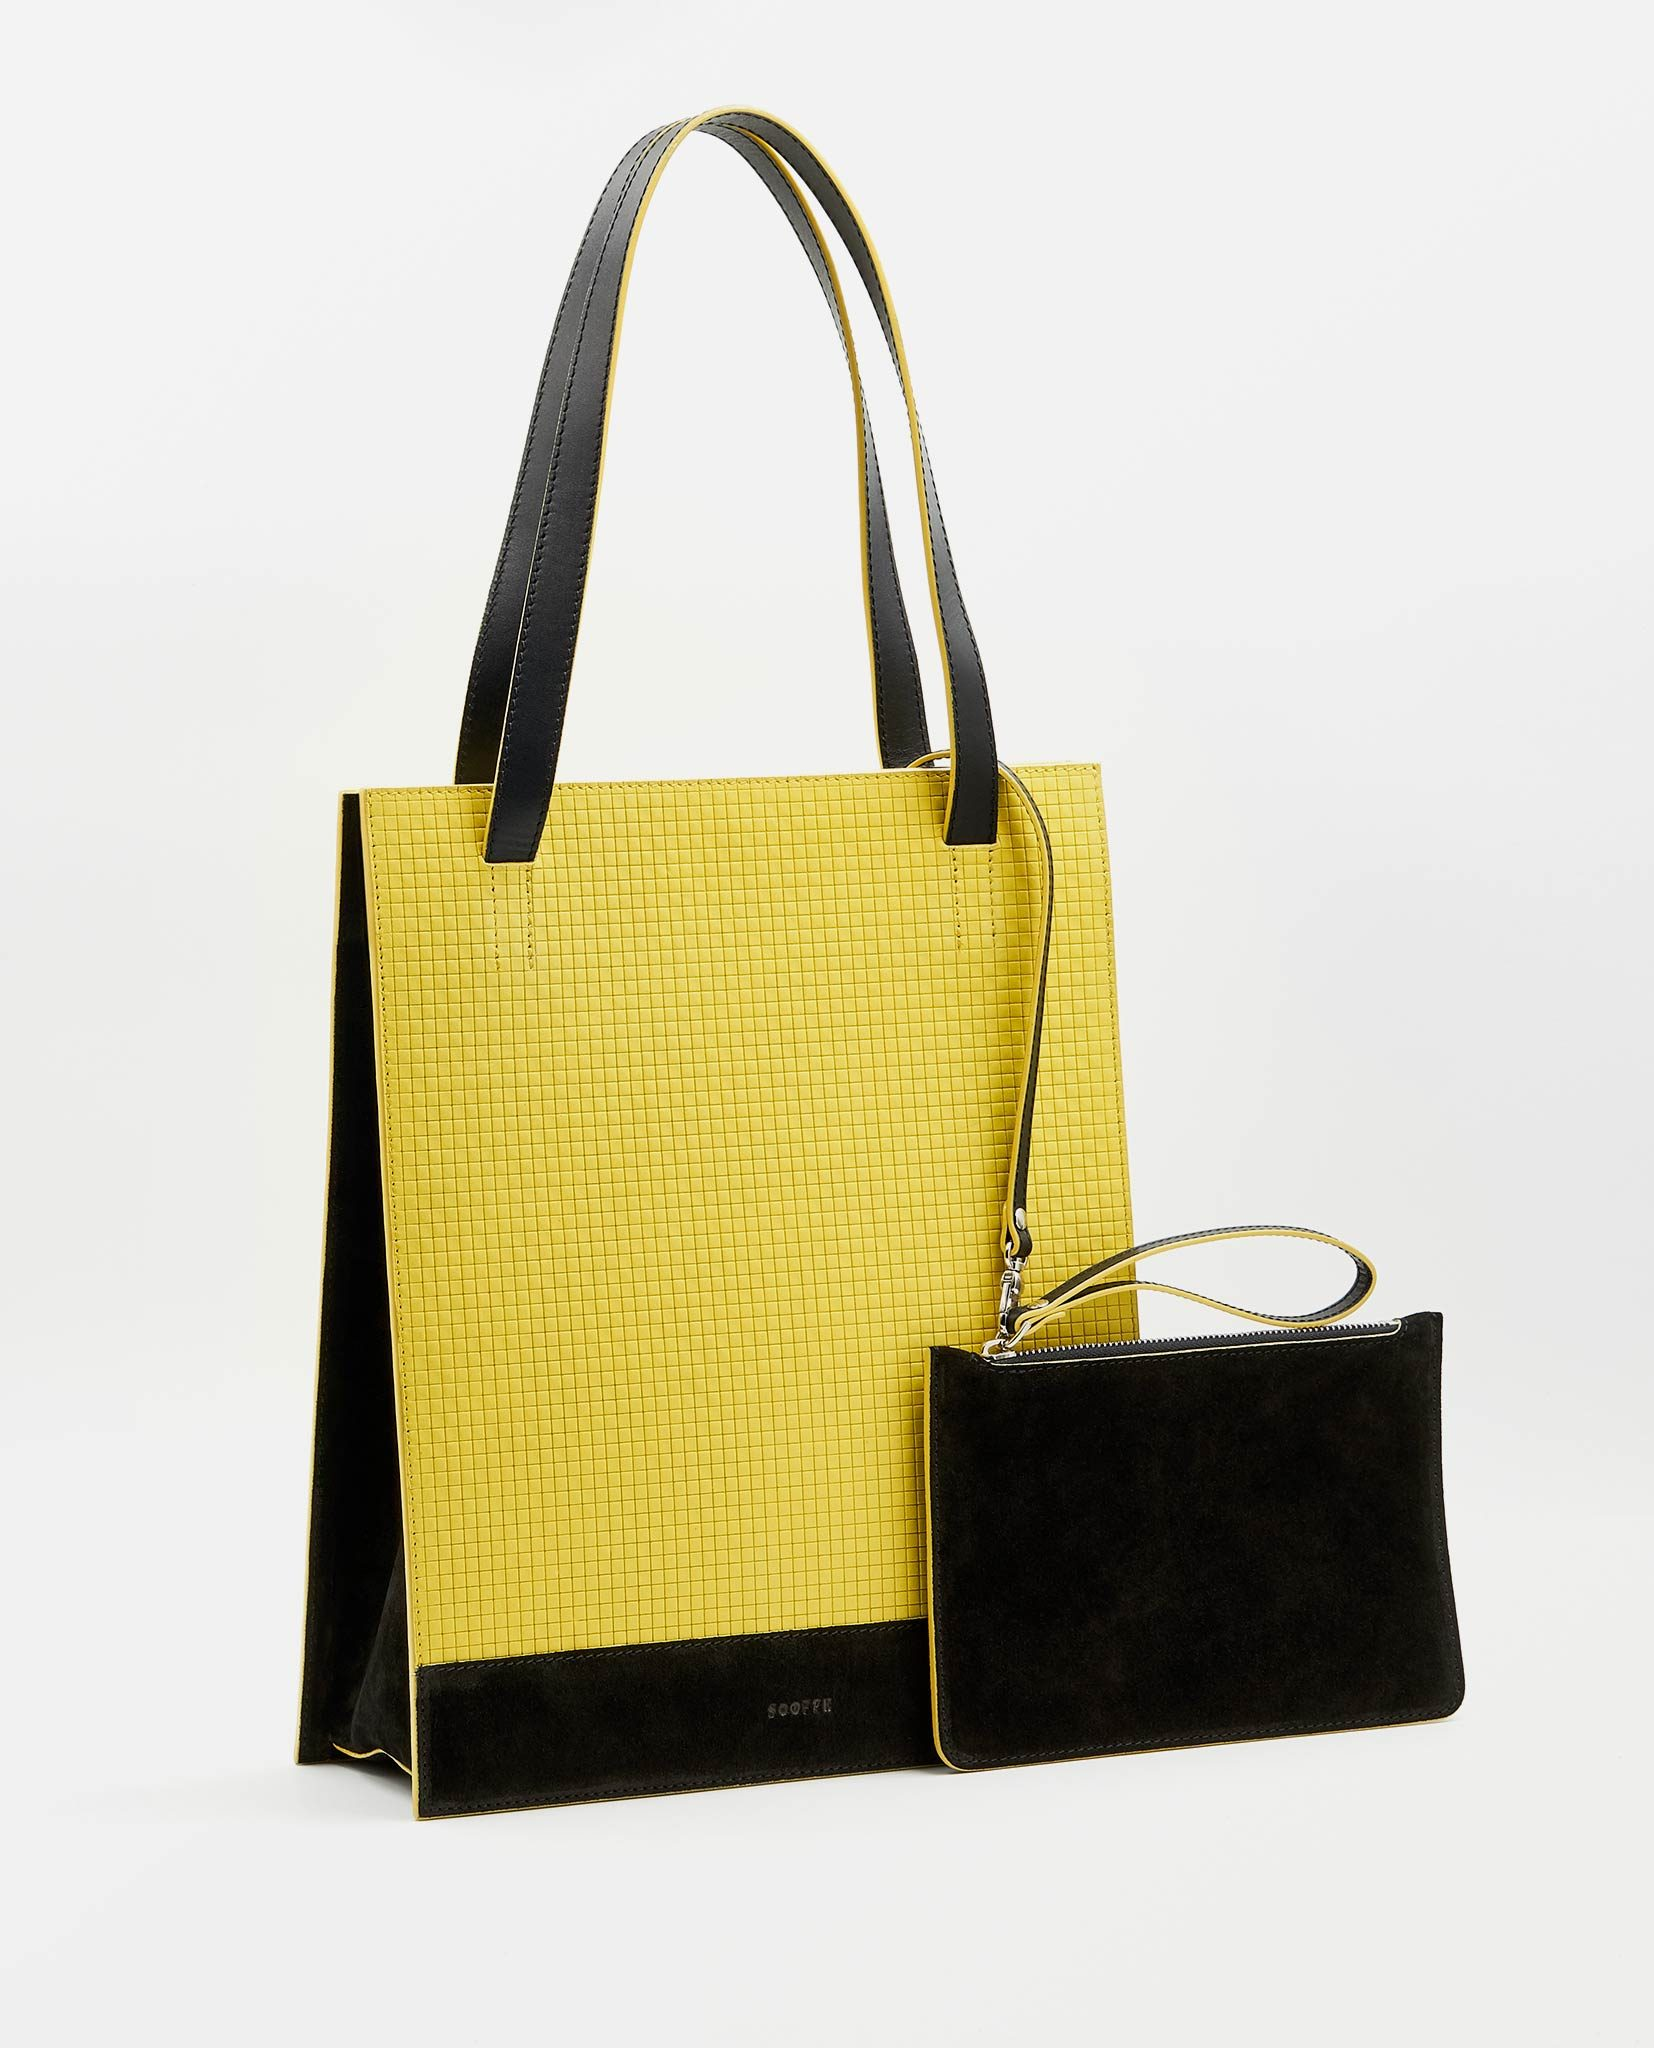 SOOFRE-Berlin-unique-Shopper-Bag-squared-yellow-black-SIDES